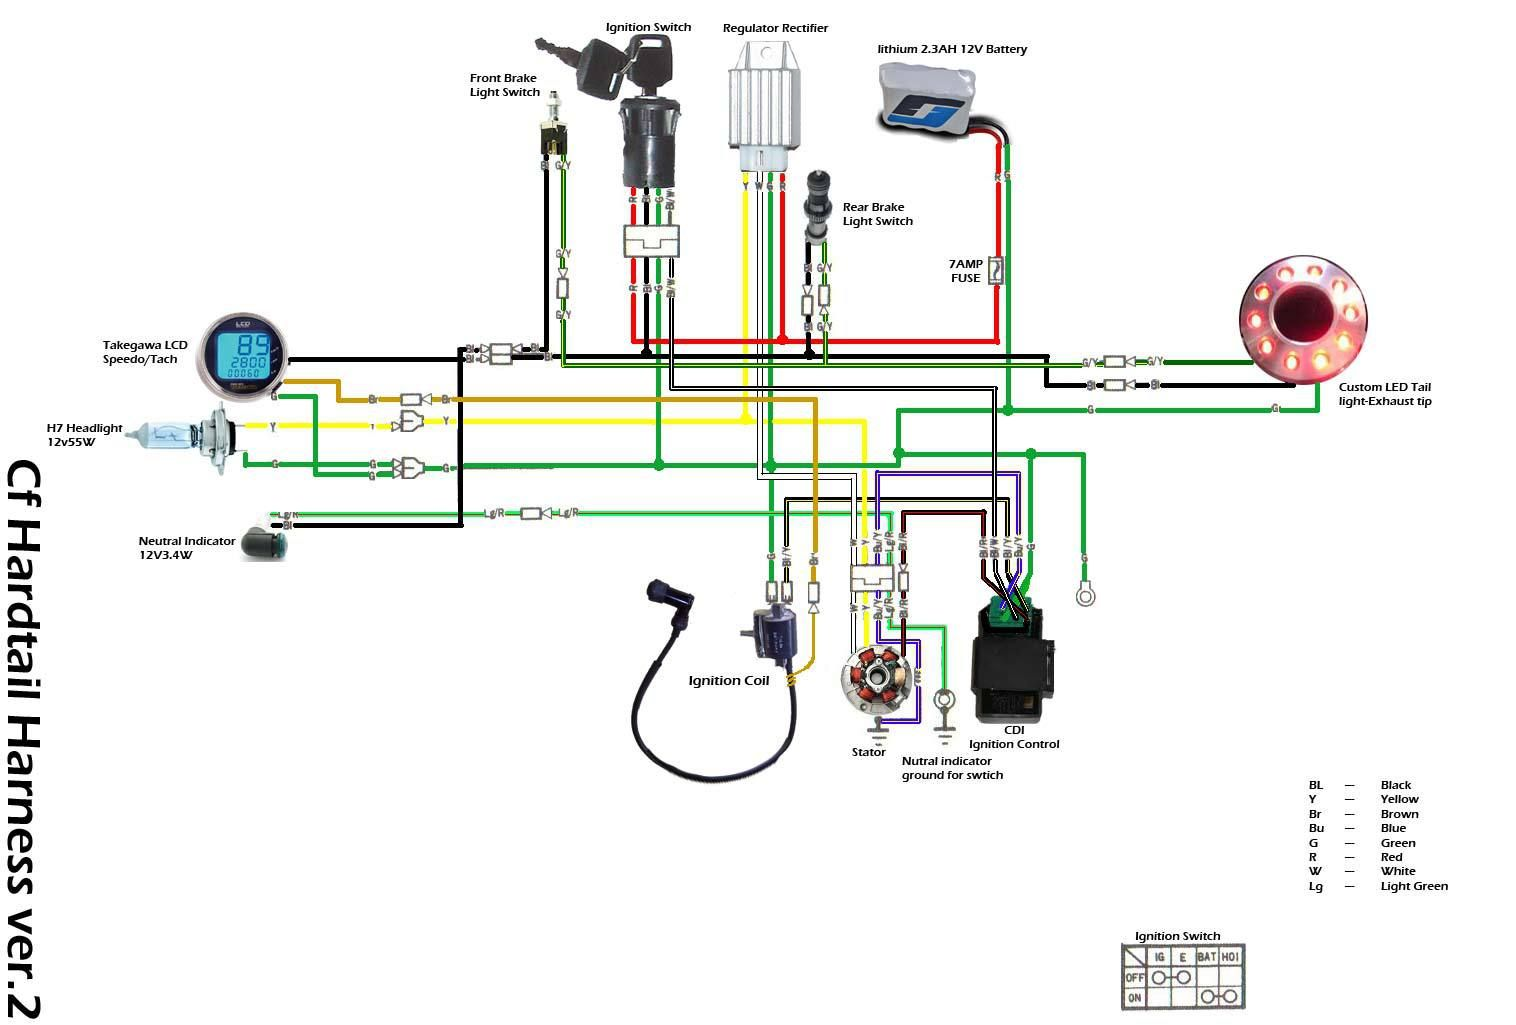 110cc Basic Wiring Setup ATVConnection Com ATV Enthusiast Community Within  110Cc Chinese Atv Diagram in 2020 | Motorcycle wiring, Pit bike, Bike enginePinterest